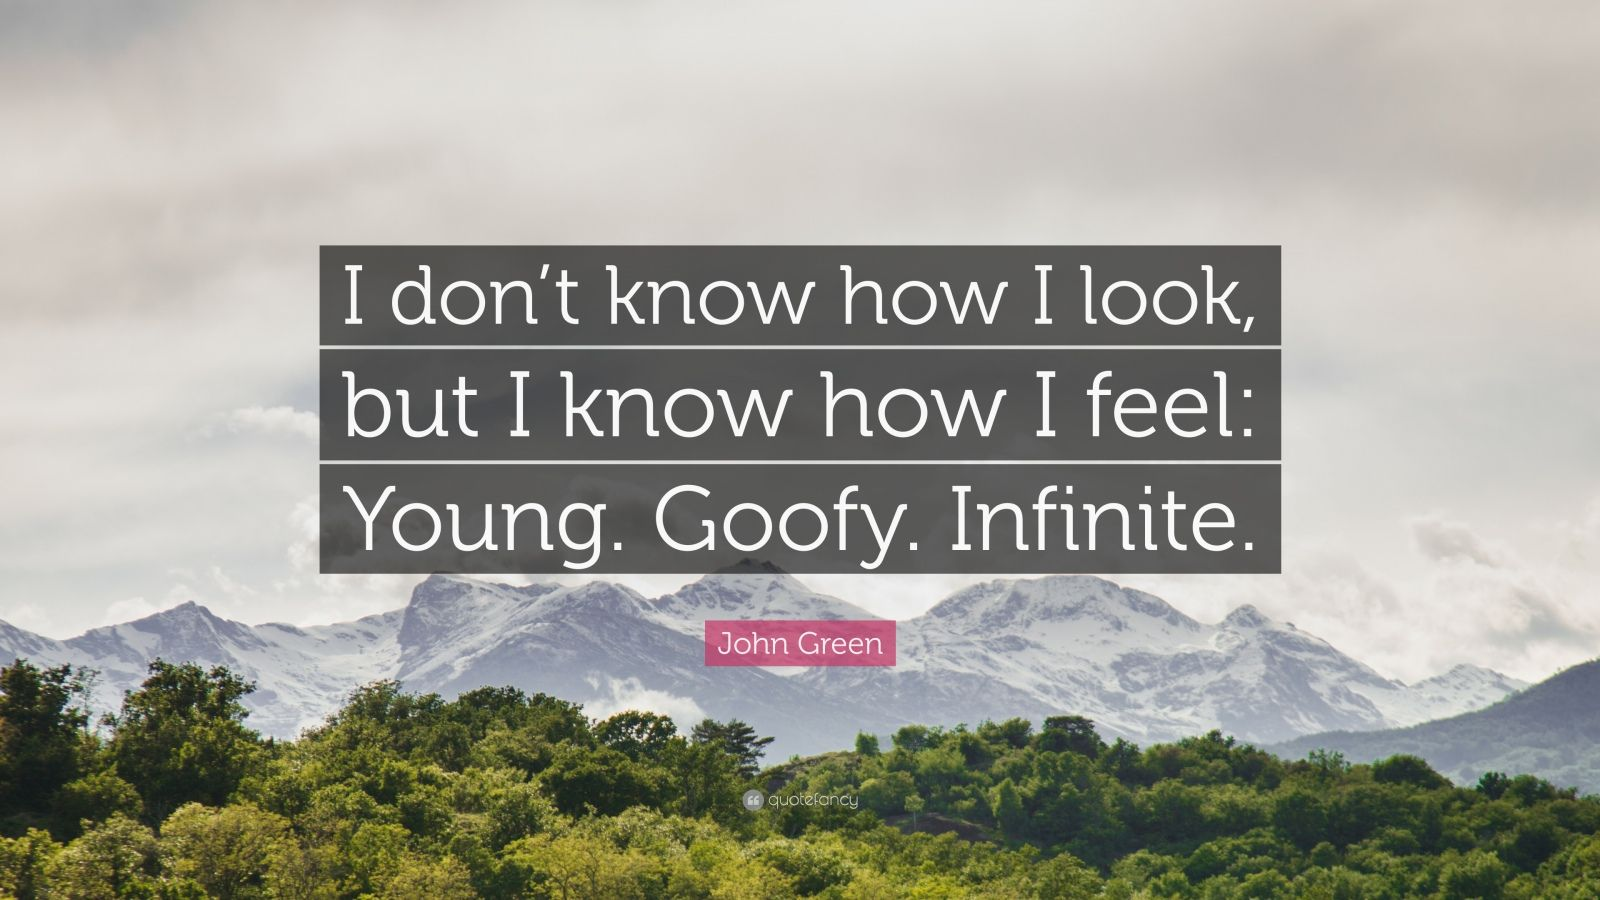 """John Green Quote: """"I don't know how I look, but I know how I feel: Young. Goofy. Infinite."""""""